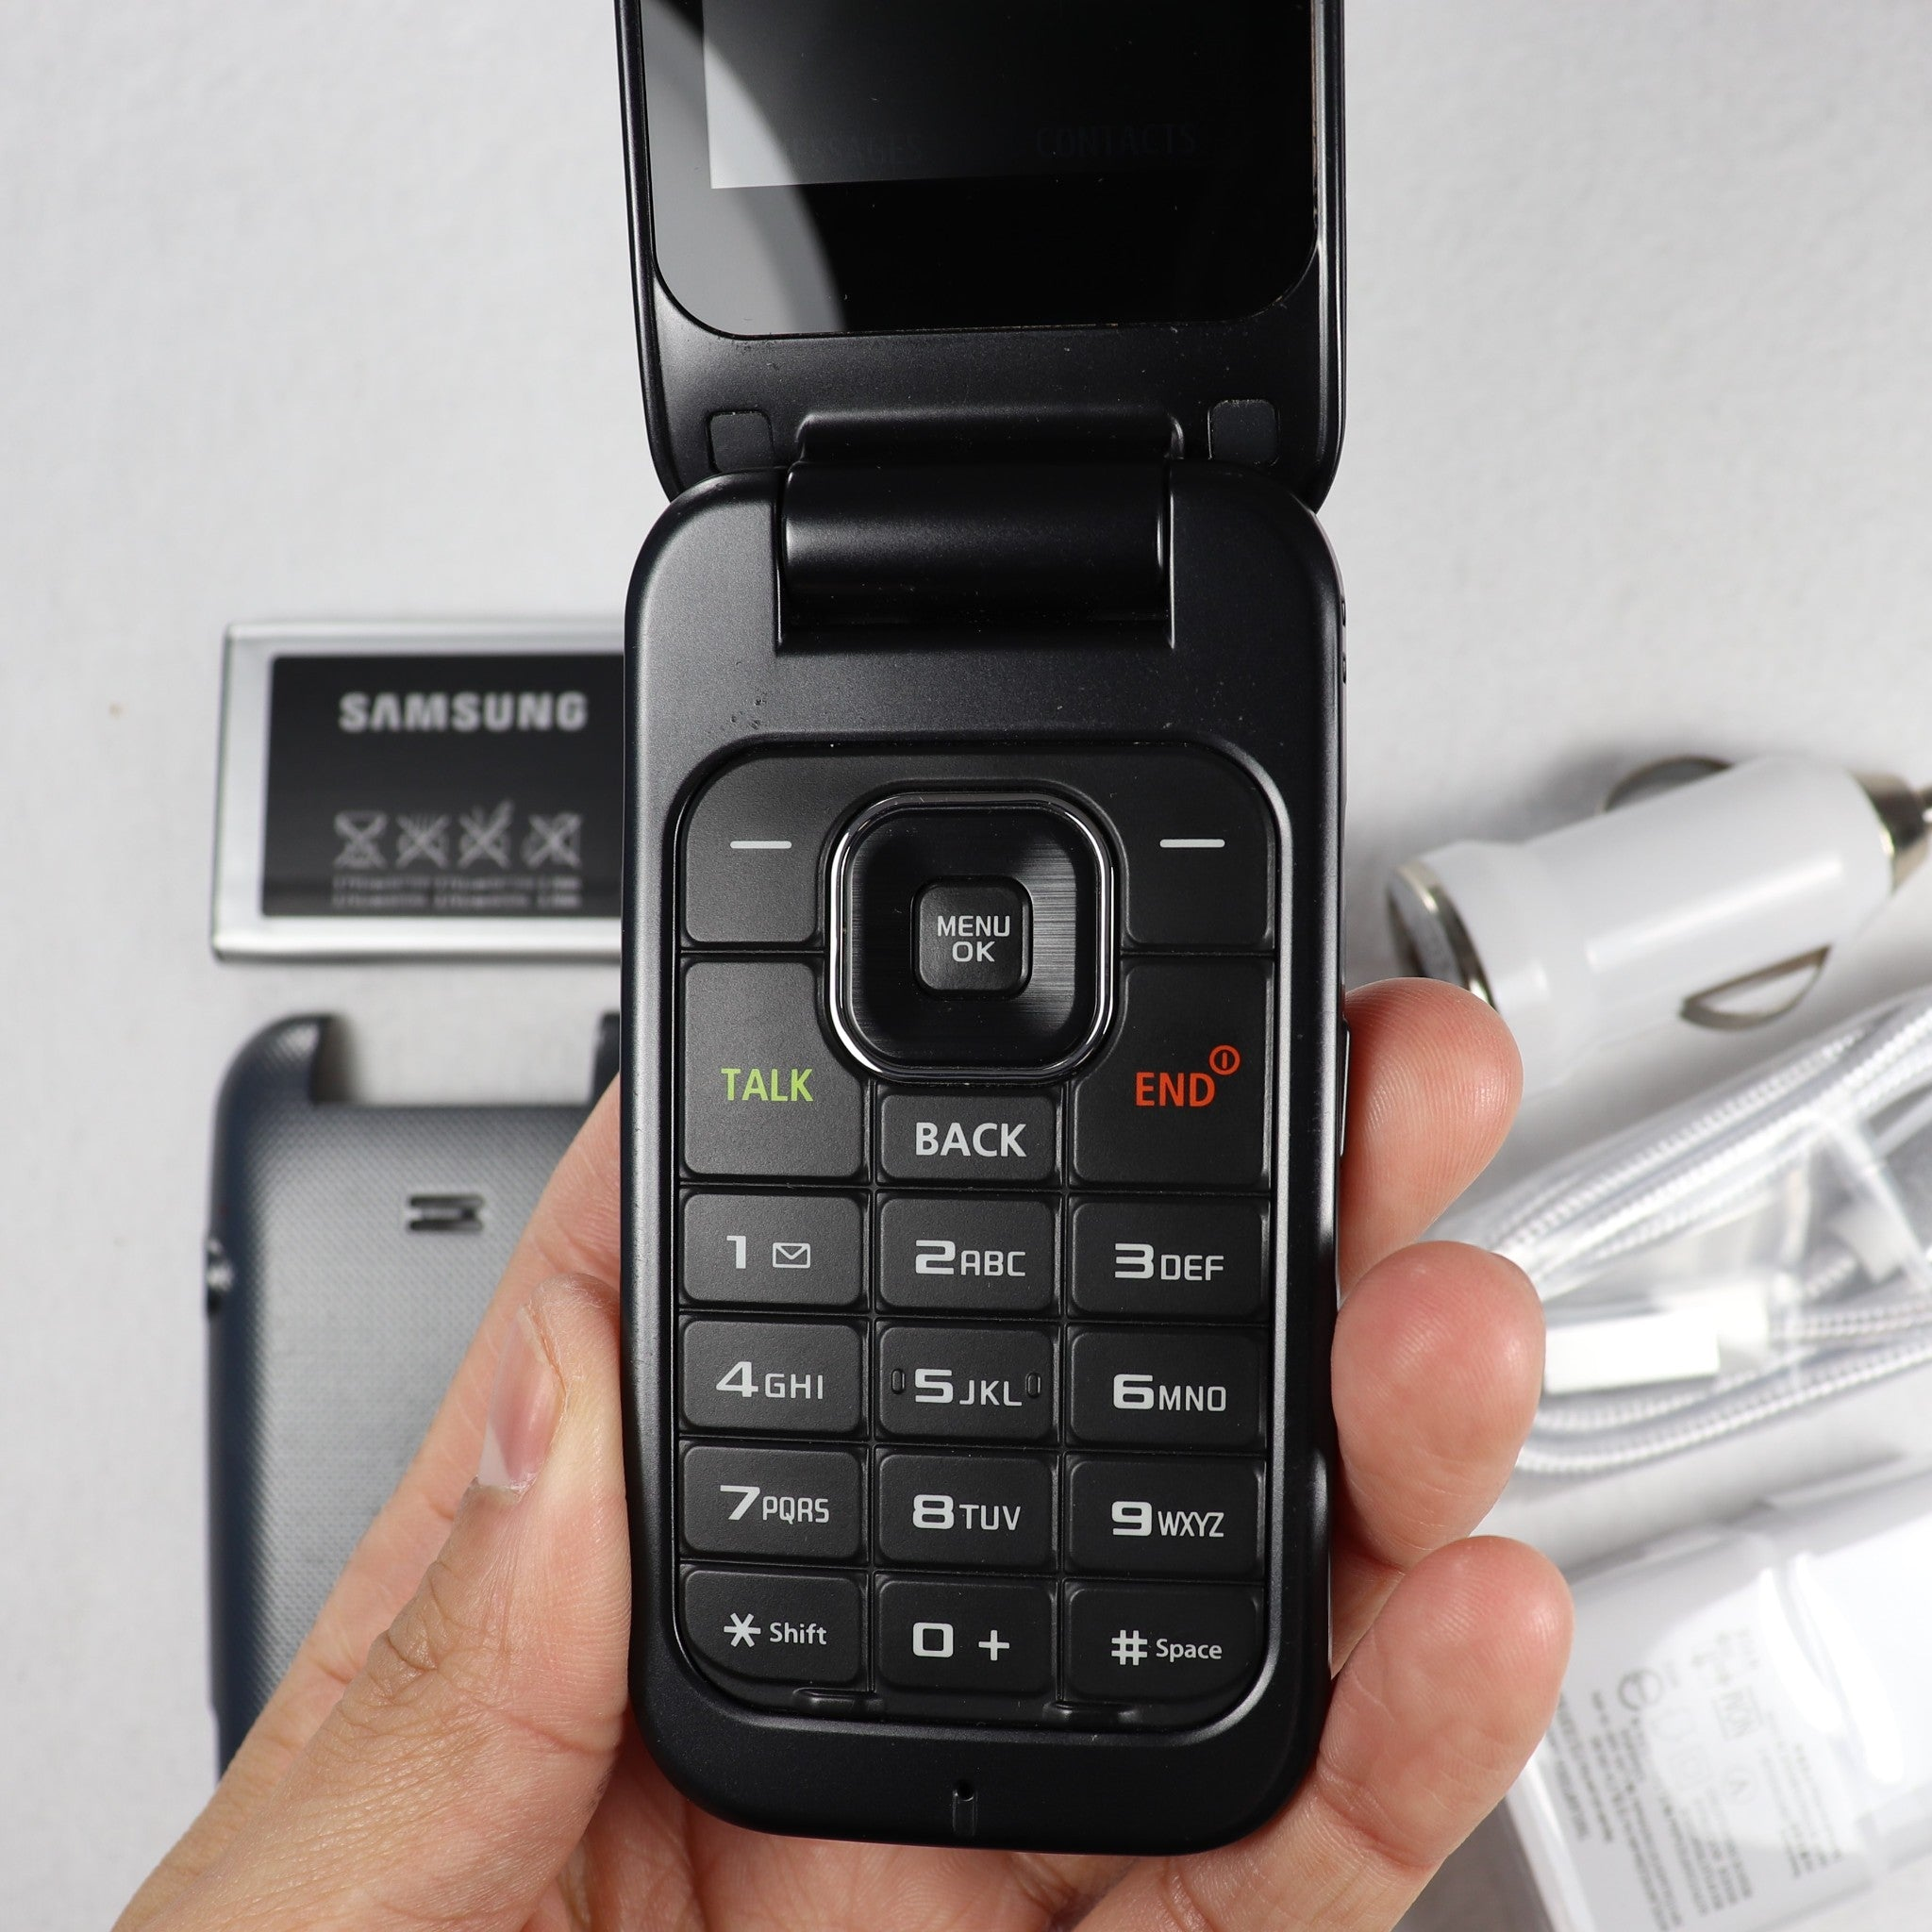 Samsung SPH-M370 (Sprint) Flip Phone 2G / 3G - Fast Free Shipping!